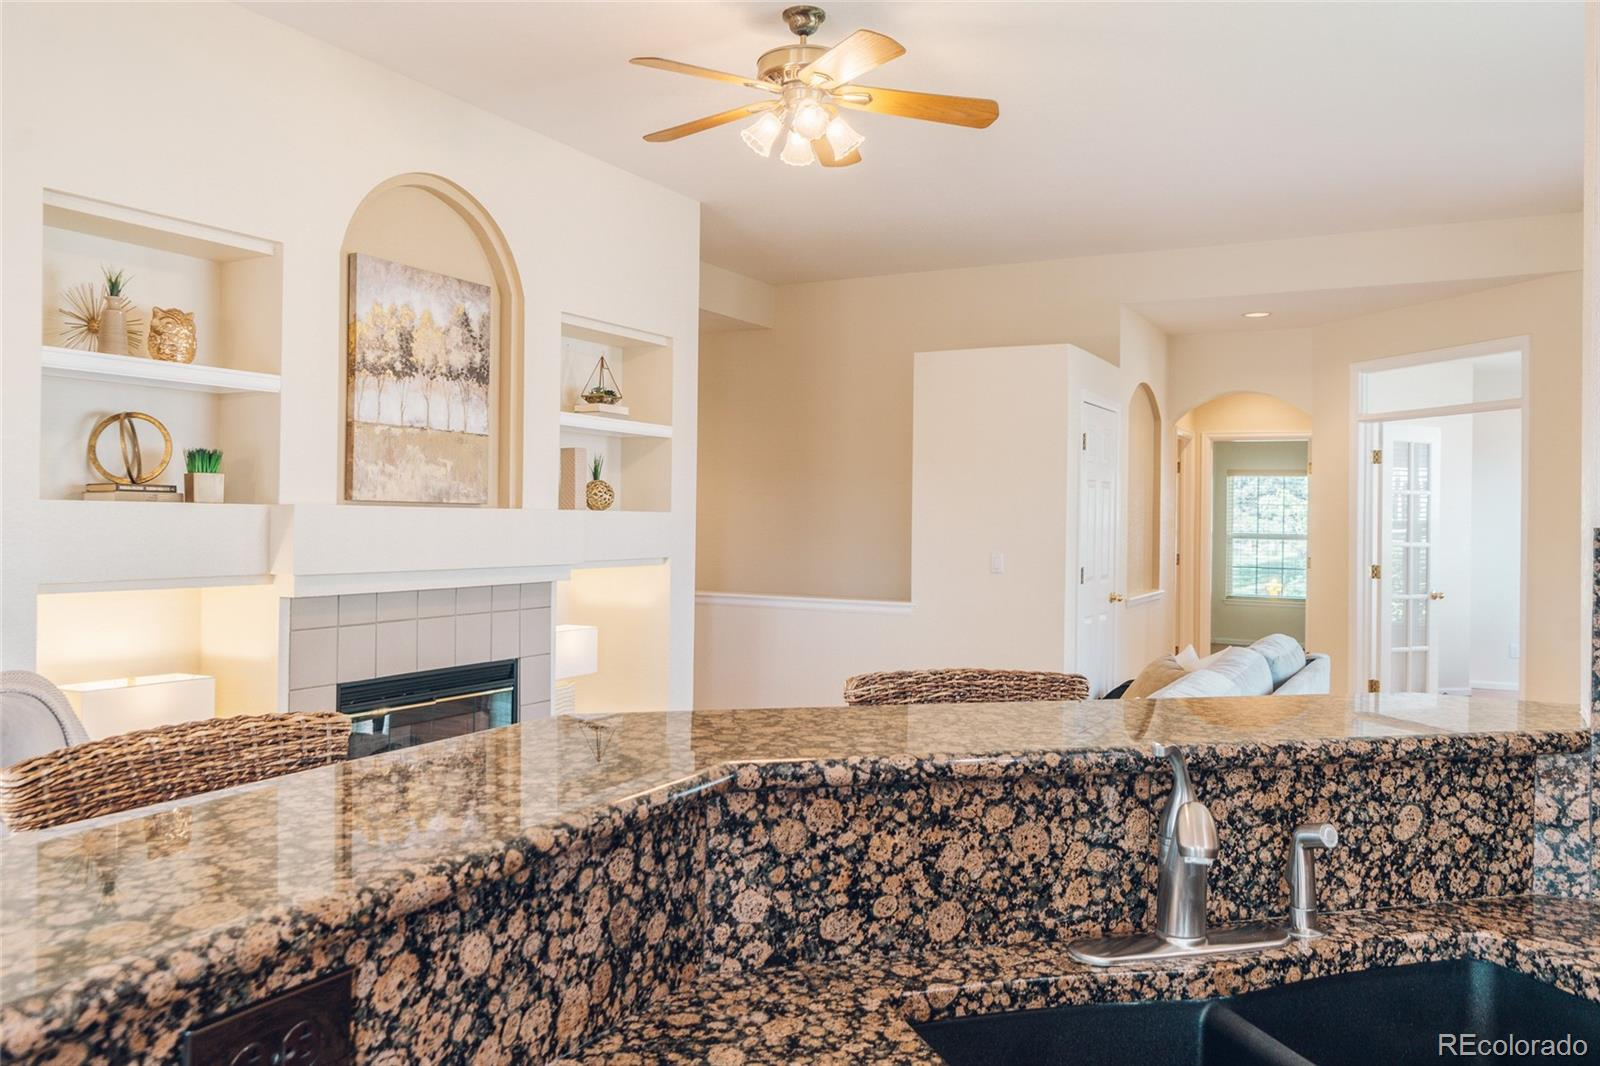 MLS# 4859119 - 16 - 9137 Woodland Drive, Highlands Ranch, CO 80126